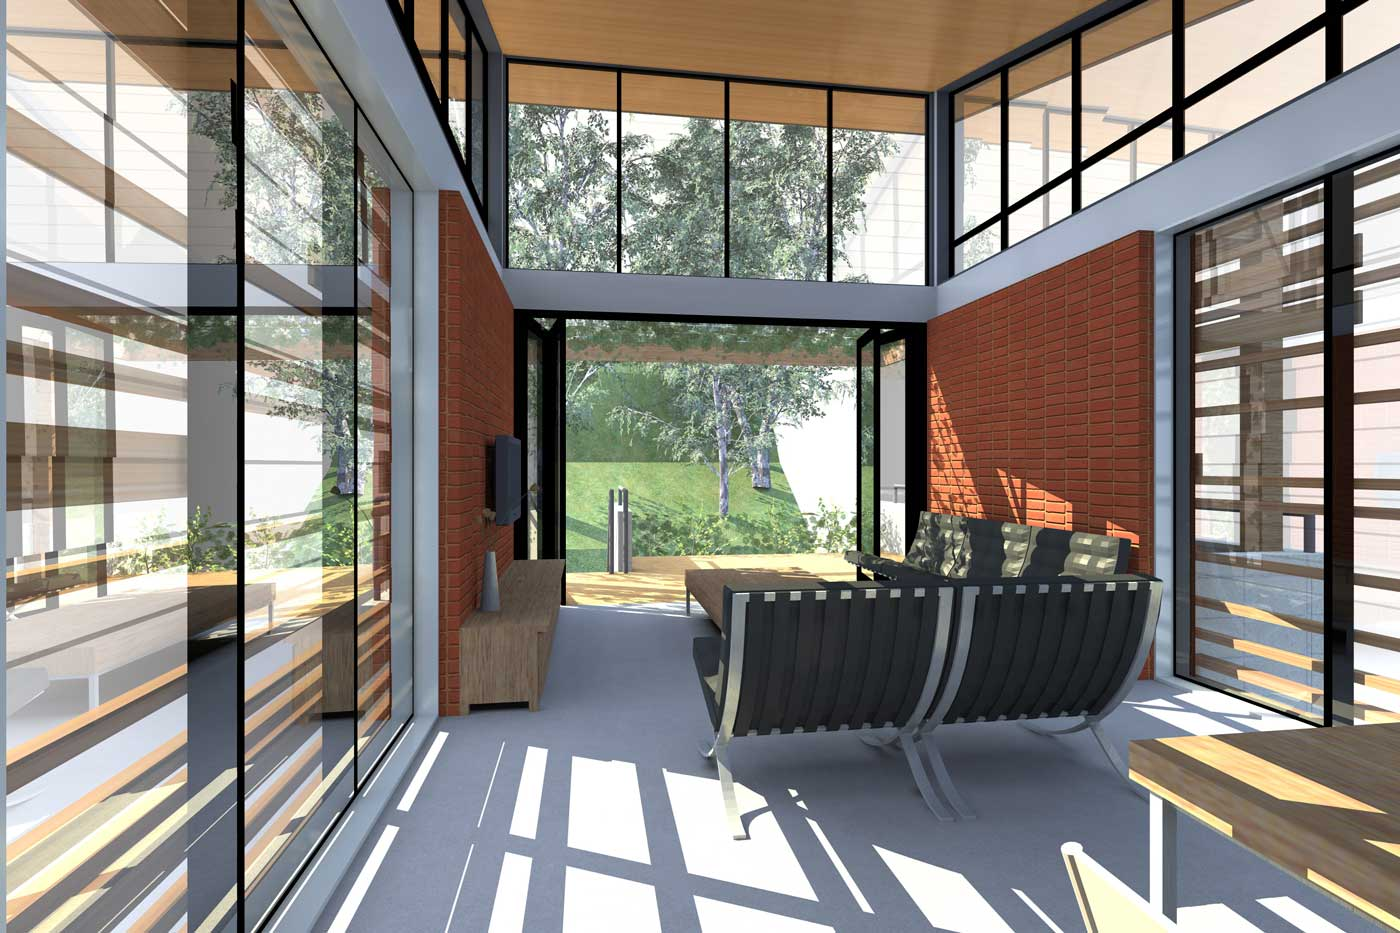 qoh-architects_gull-wing-house_4-web Gull Wing Roof House Plans on aluminium roof, lean to roof, half hip roof, victorian roof, steel roof, pavilion roof, bird wing roof,